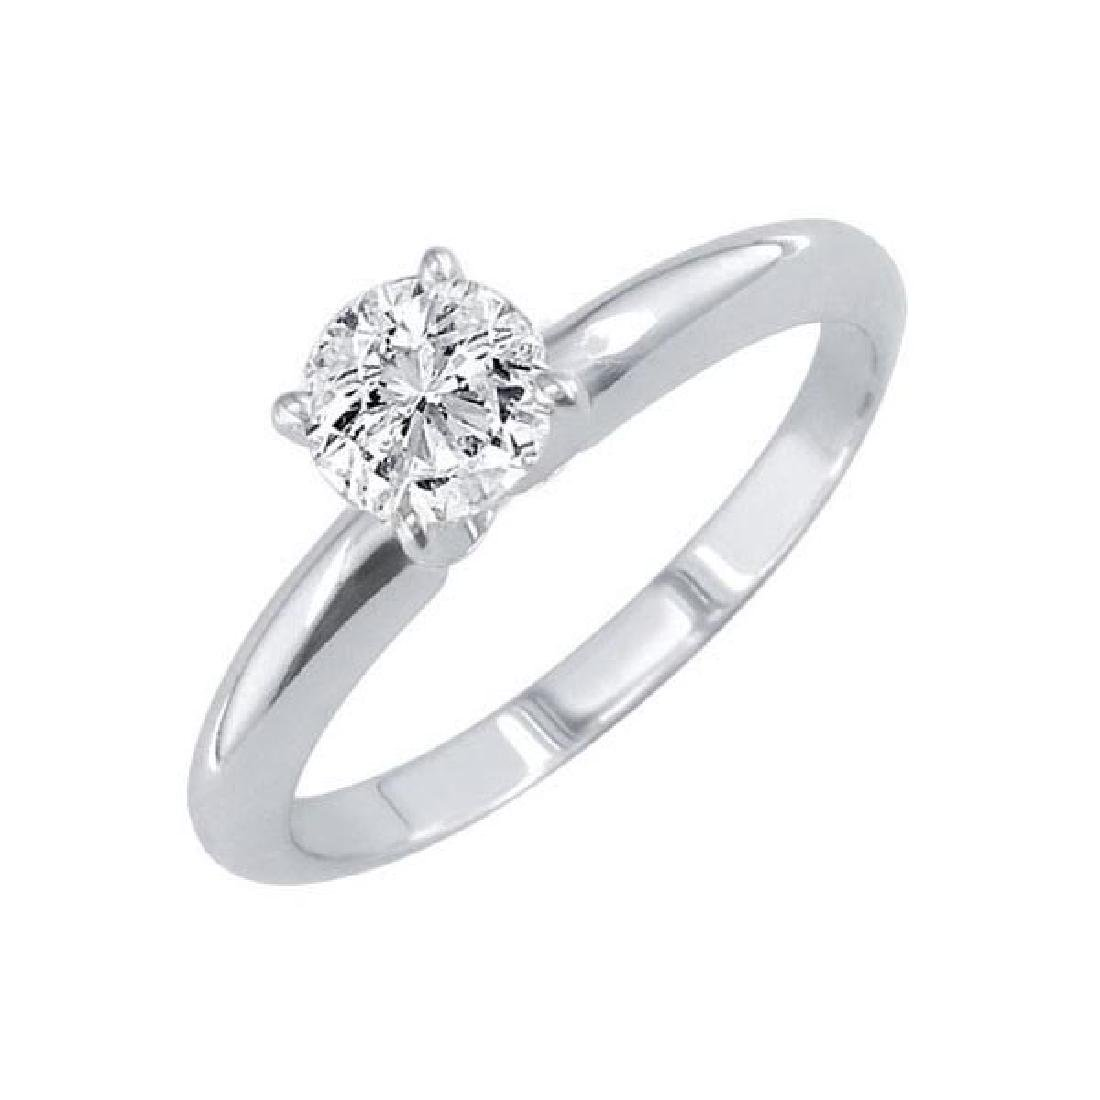 Certified 1.5 CTW Round Diamond Solitaire 14k Ring G/SI